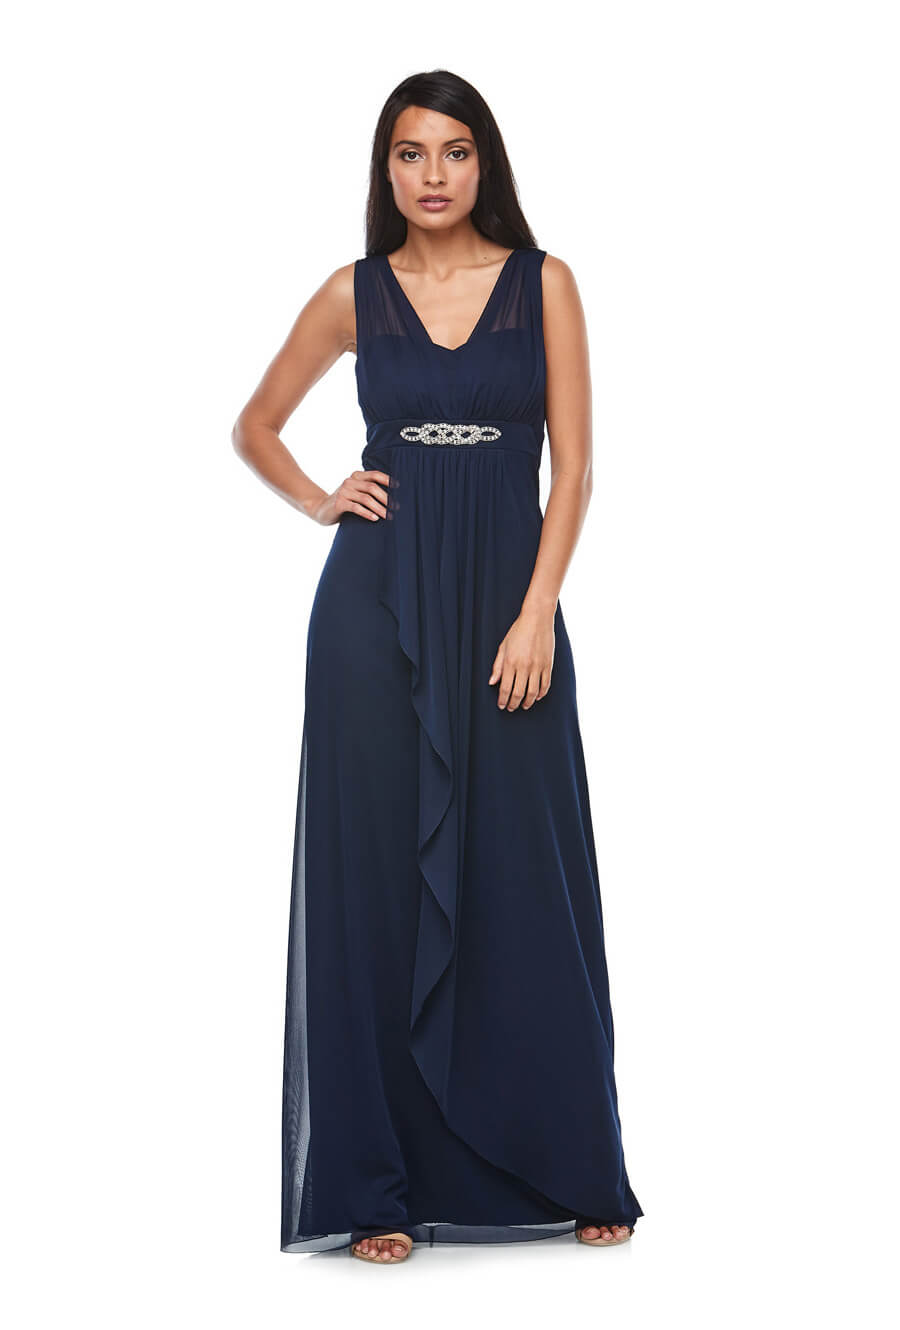 Stretch chiffon dress with waterfall front overlay skirt & diamanté trim